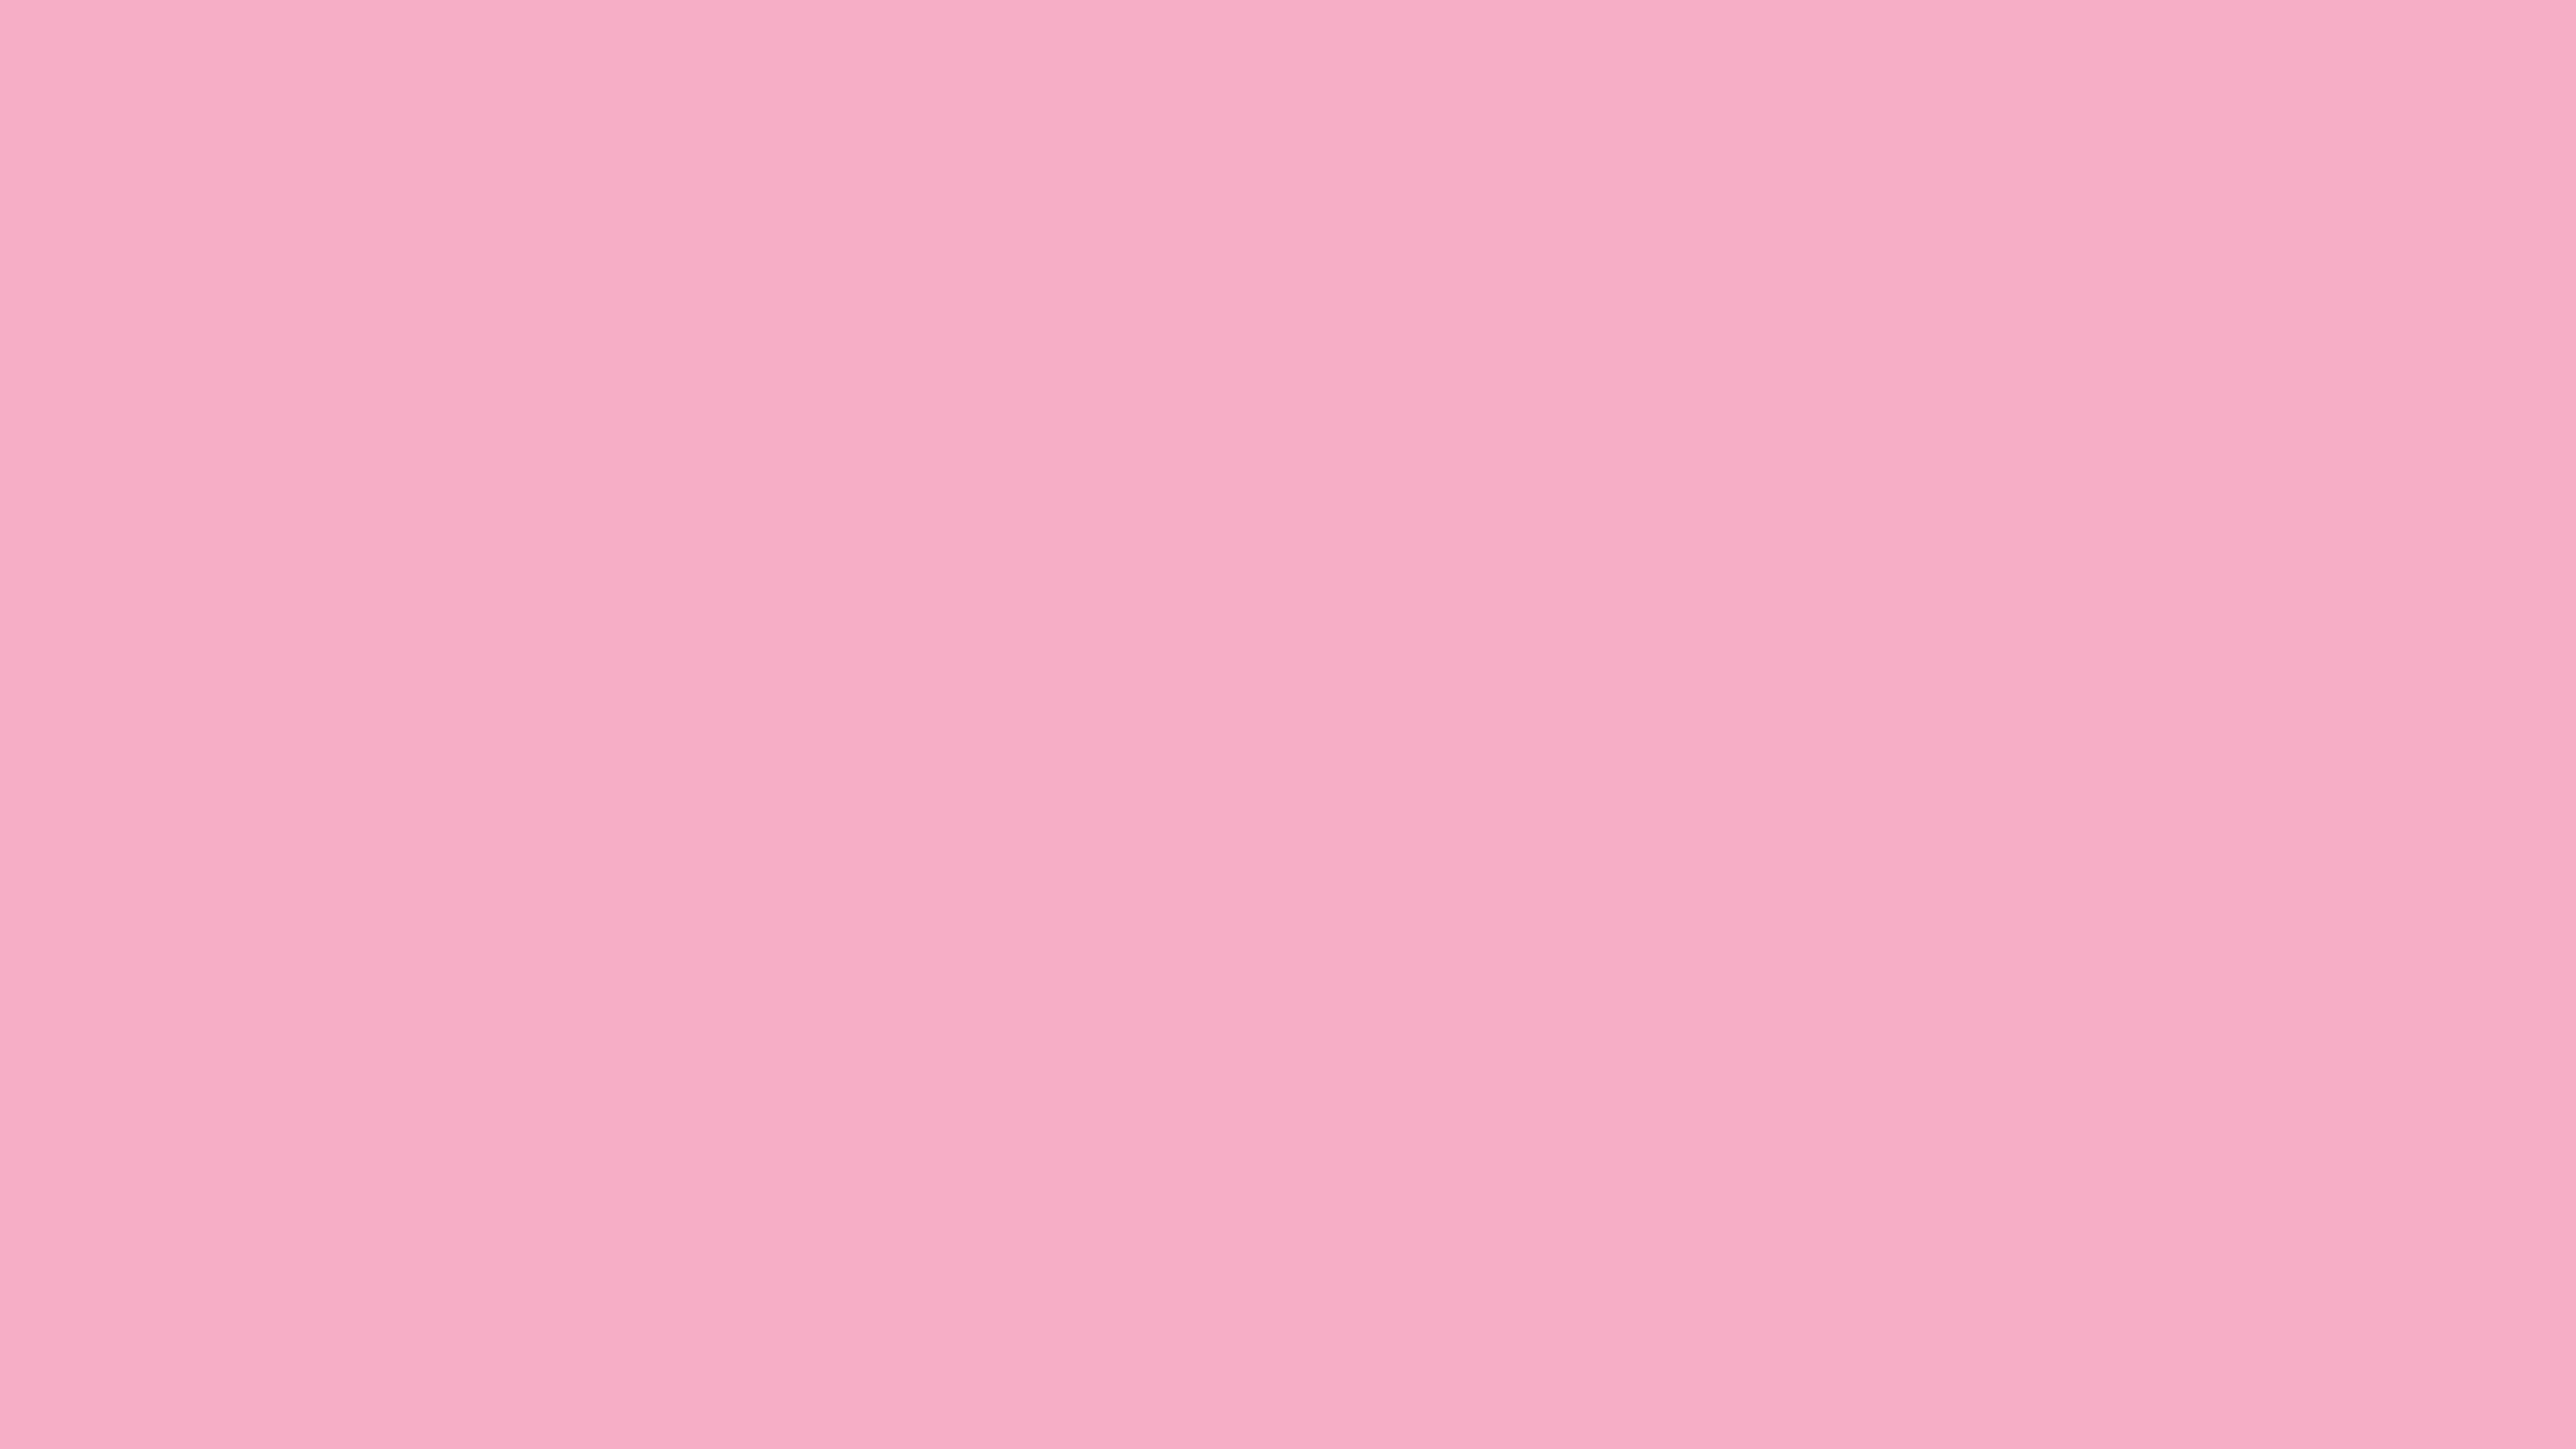 3840x2160 Nadeshiko Pink Solid Color Background